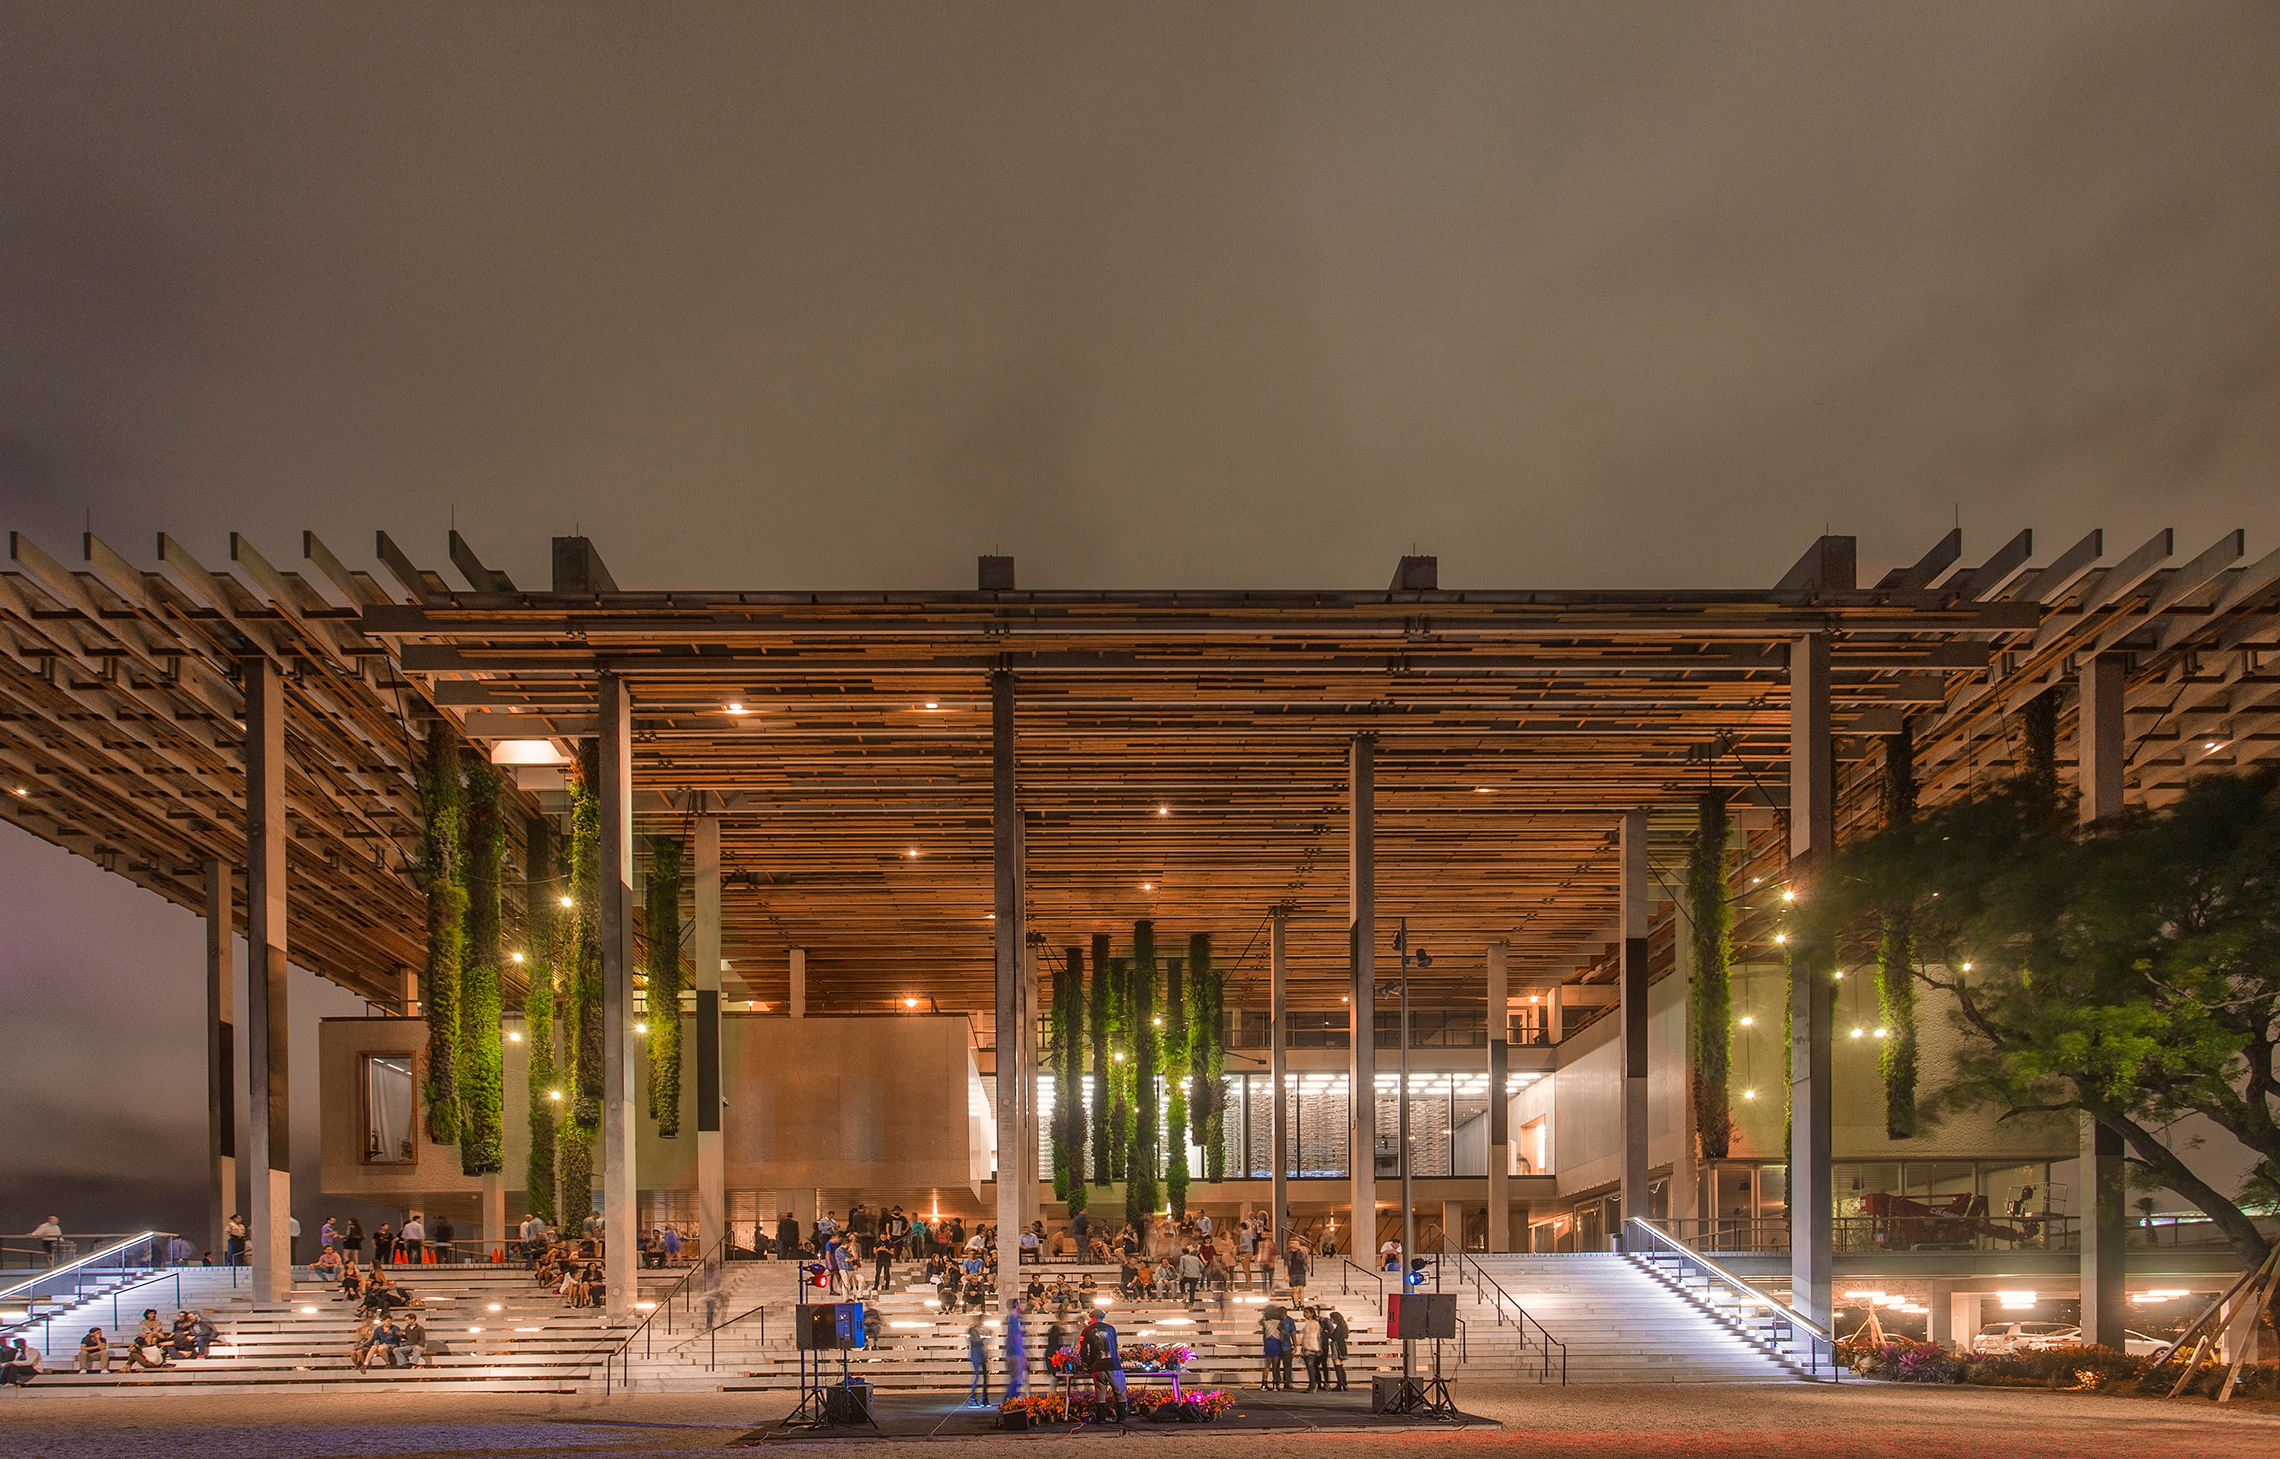 The 2013 PAMM building was designed by Swiss architects Herzog and de Meuron.